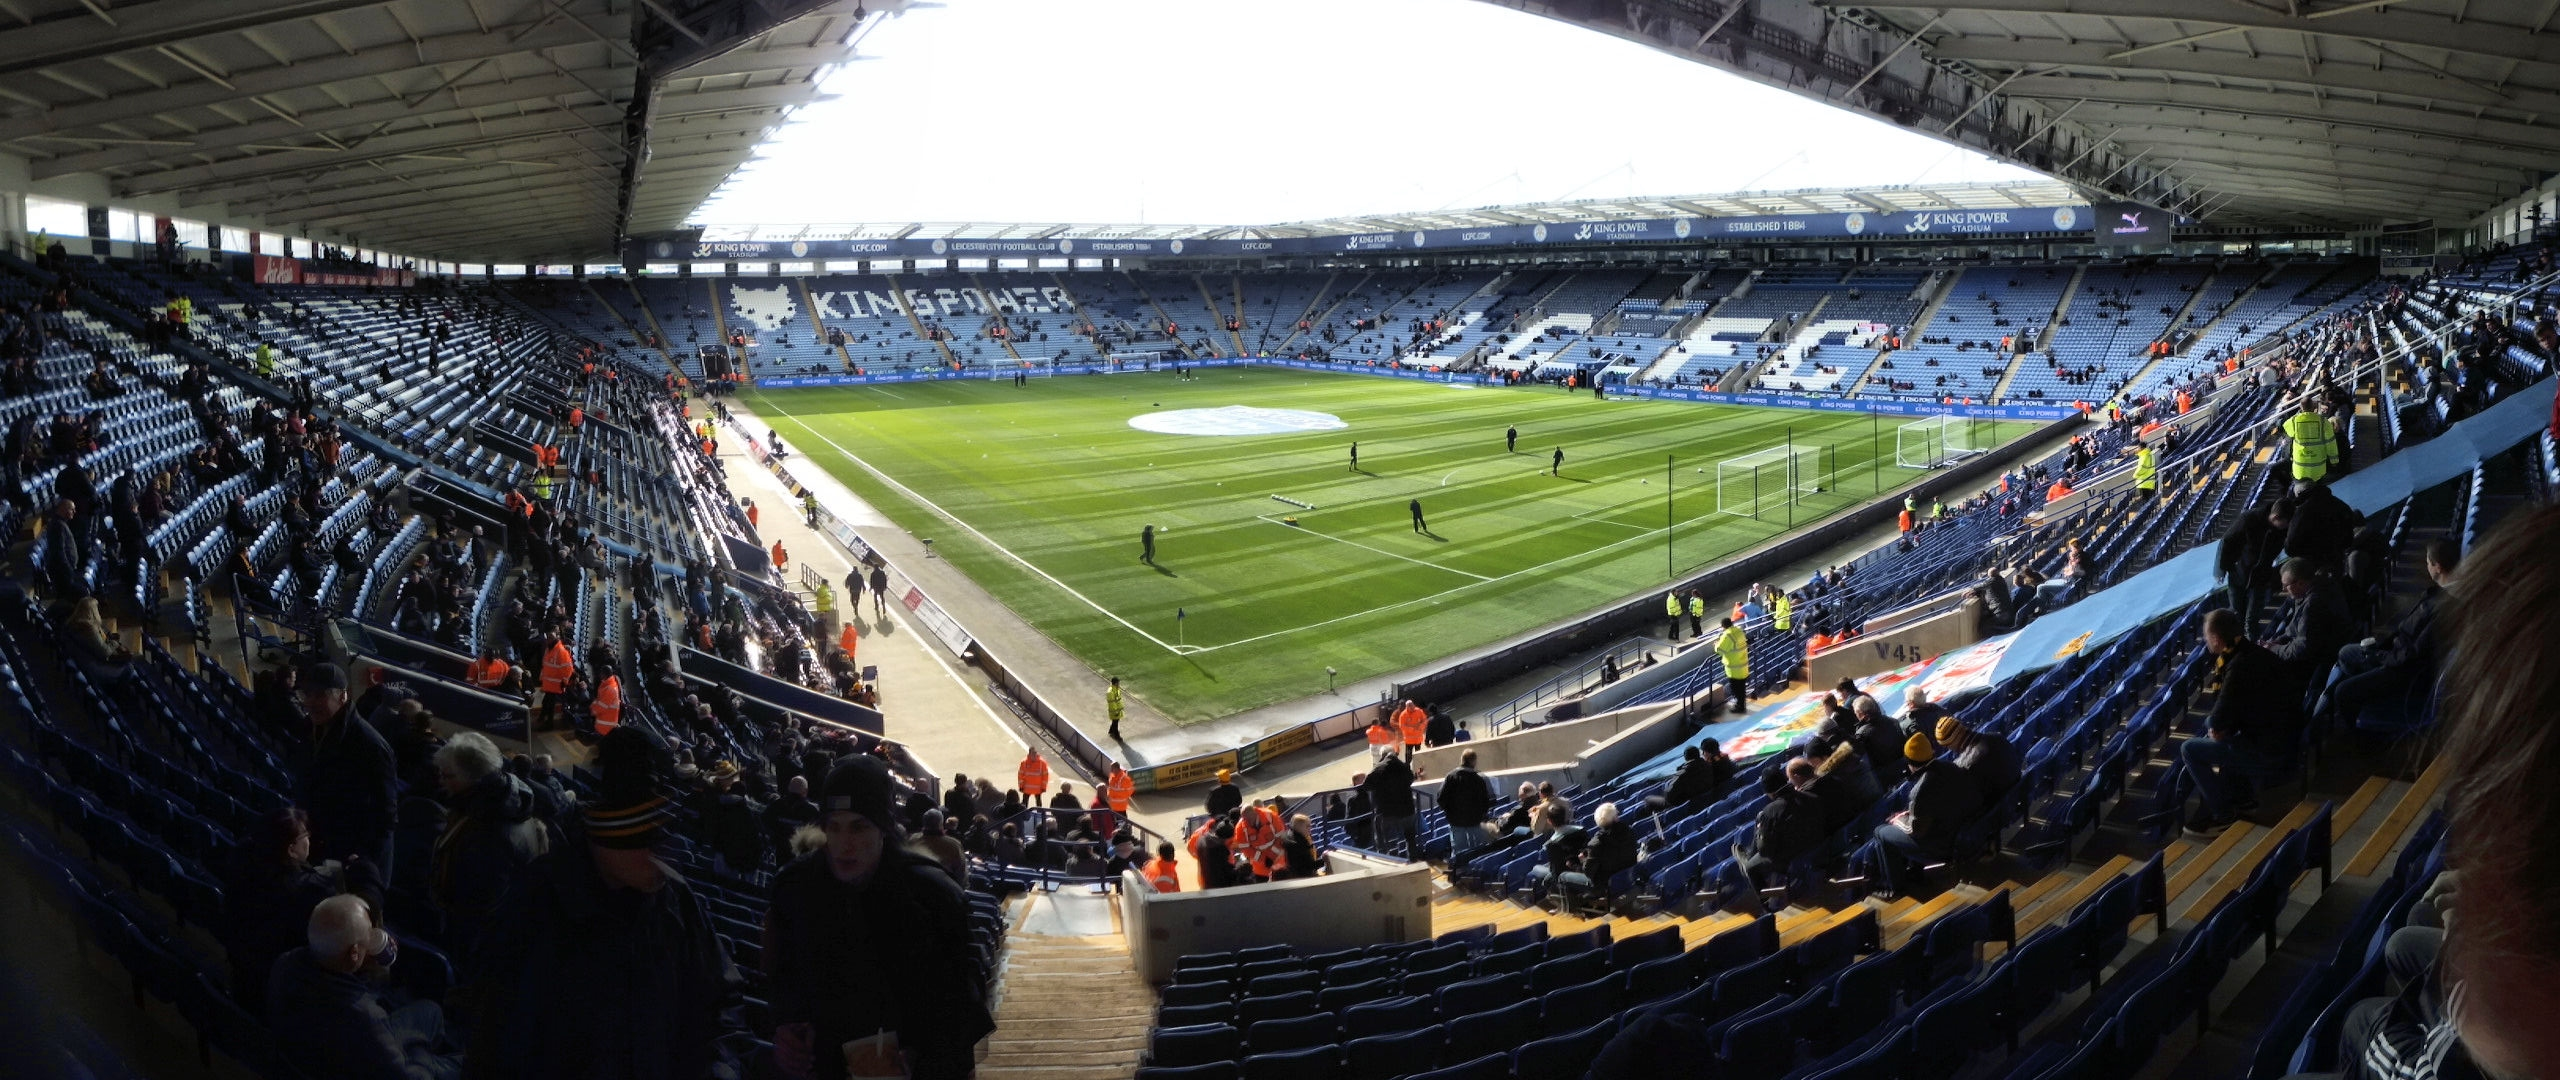 KING POWER STADIUM MAEPL